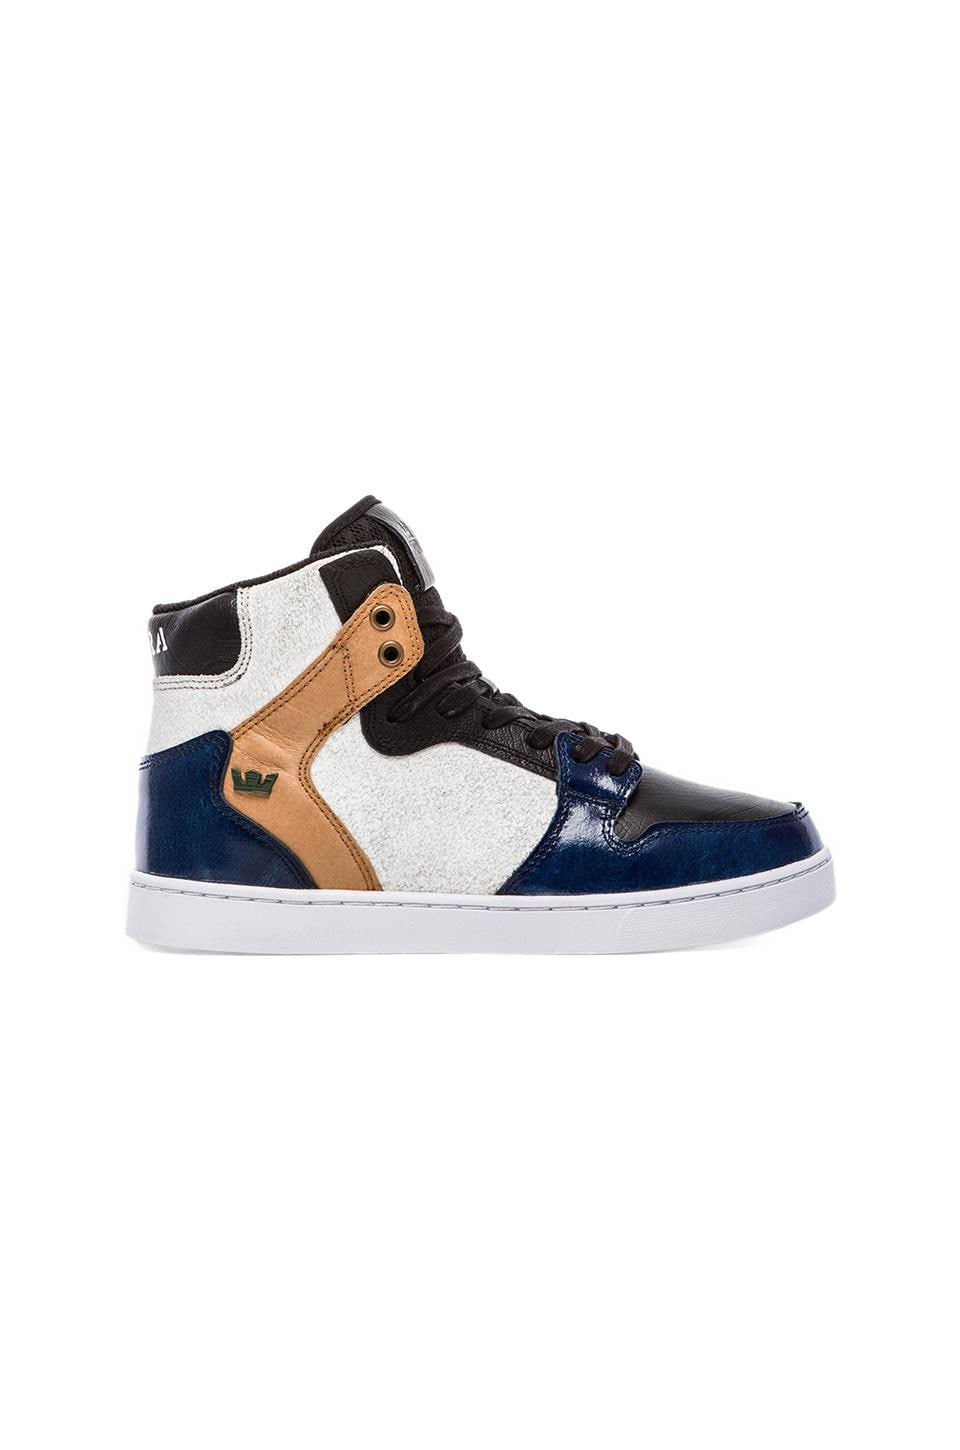 Supra Vaider LX in Royal & White